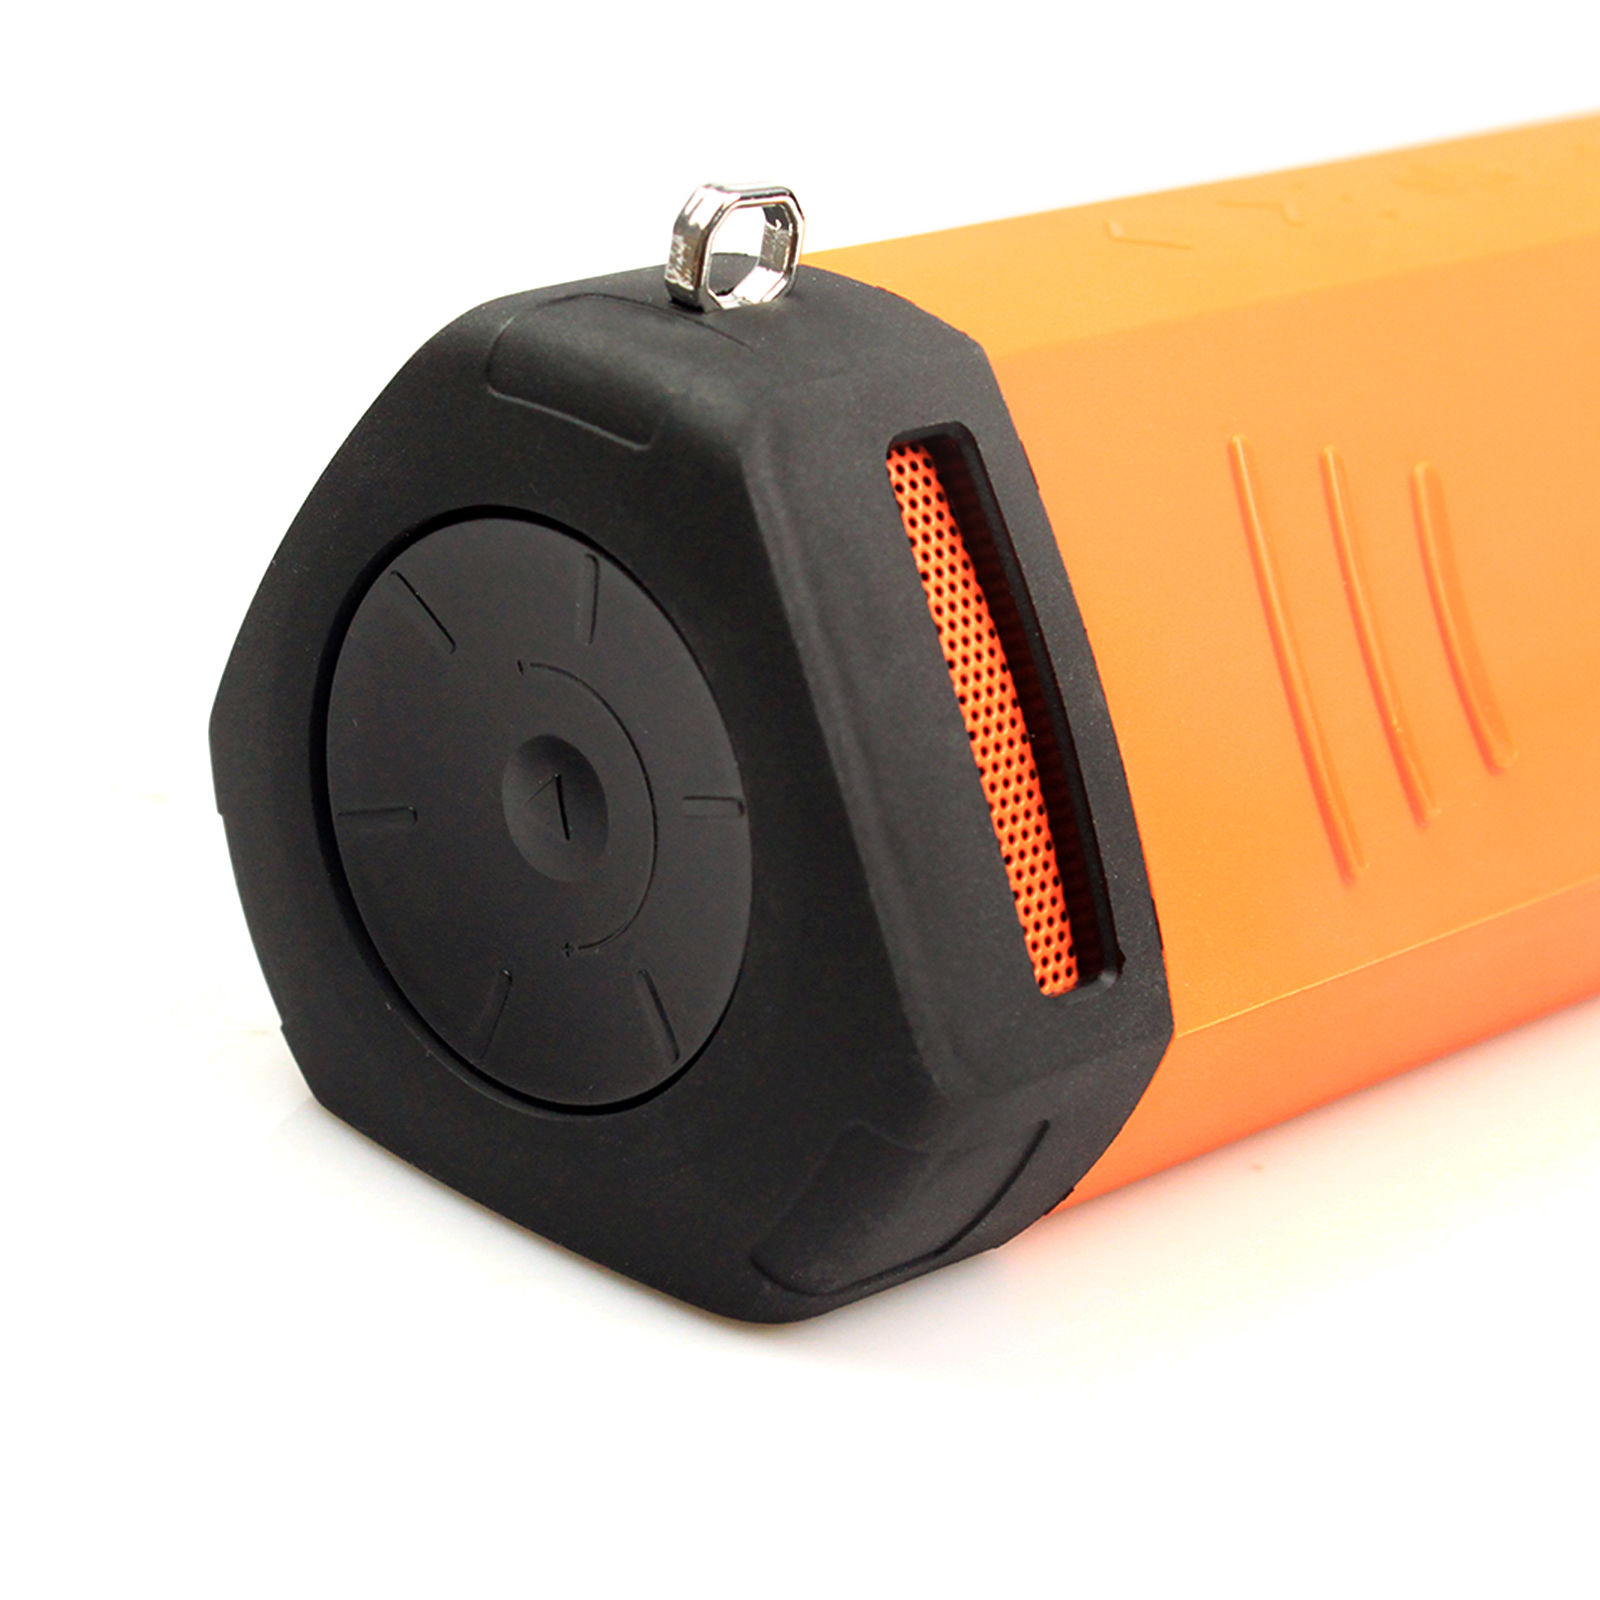 EARSON New Portable Waterproof Shockproof Wireless